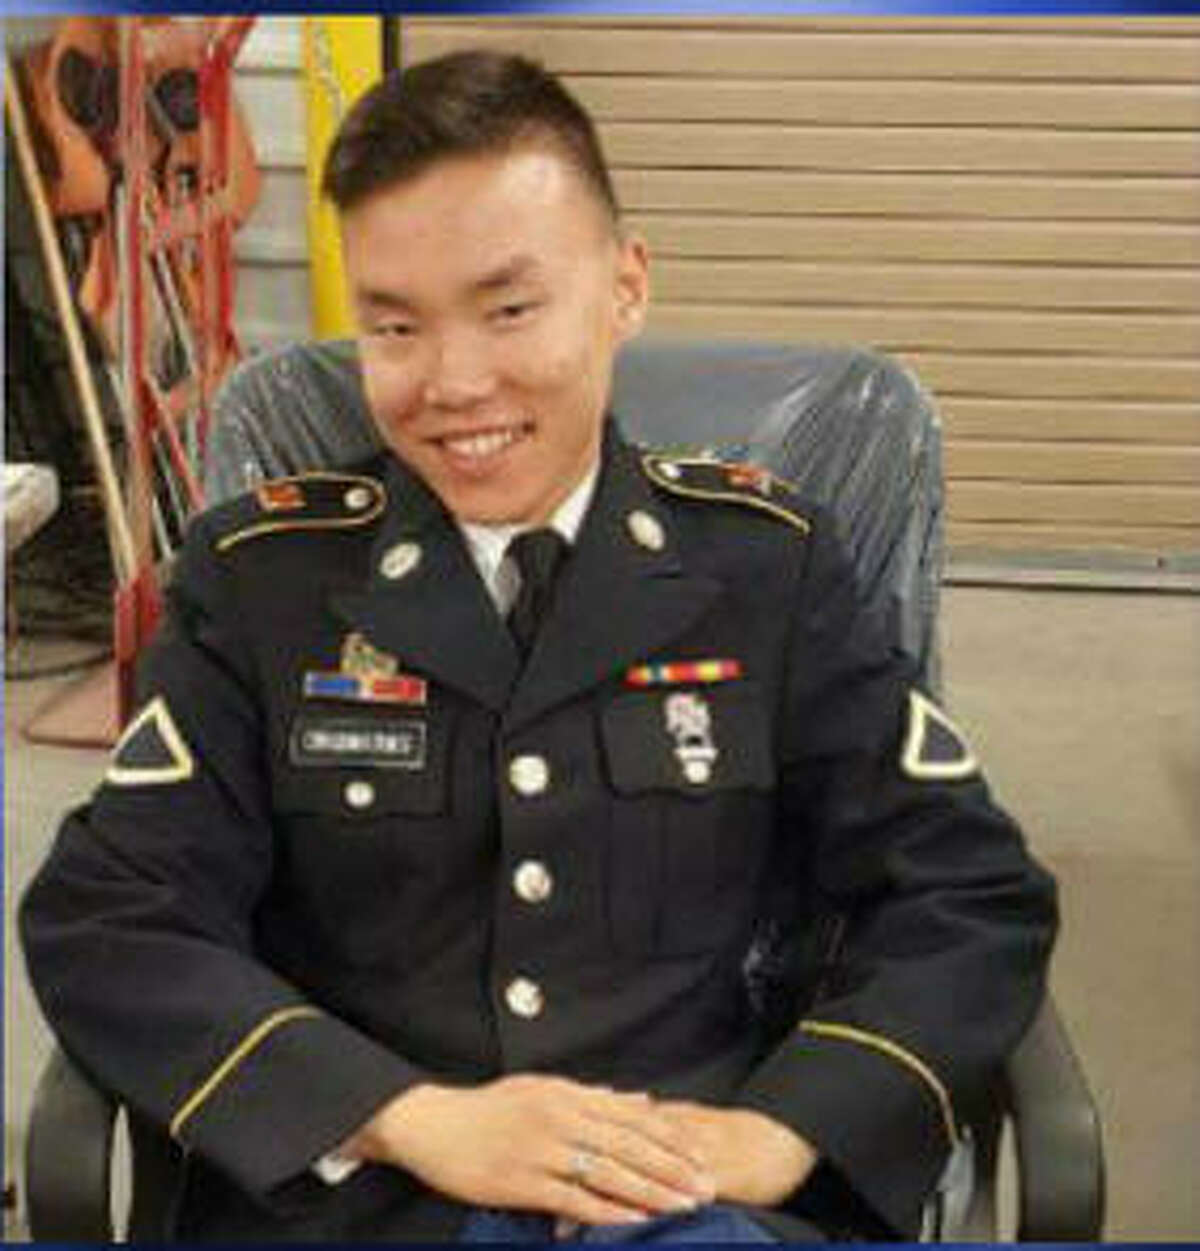 Missing soldier Jake Obad-Mathis, a U.S. Army soldier based at Fort Bliss in West Texas, hasn't been heard from since Dec. 19, 2016. He's considered AWOL.